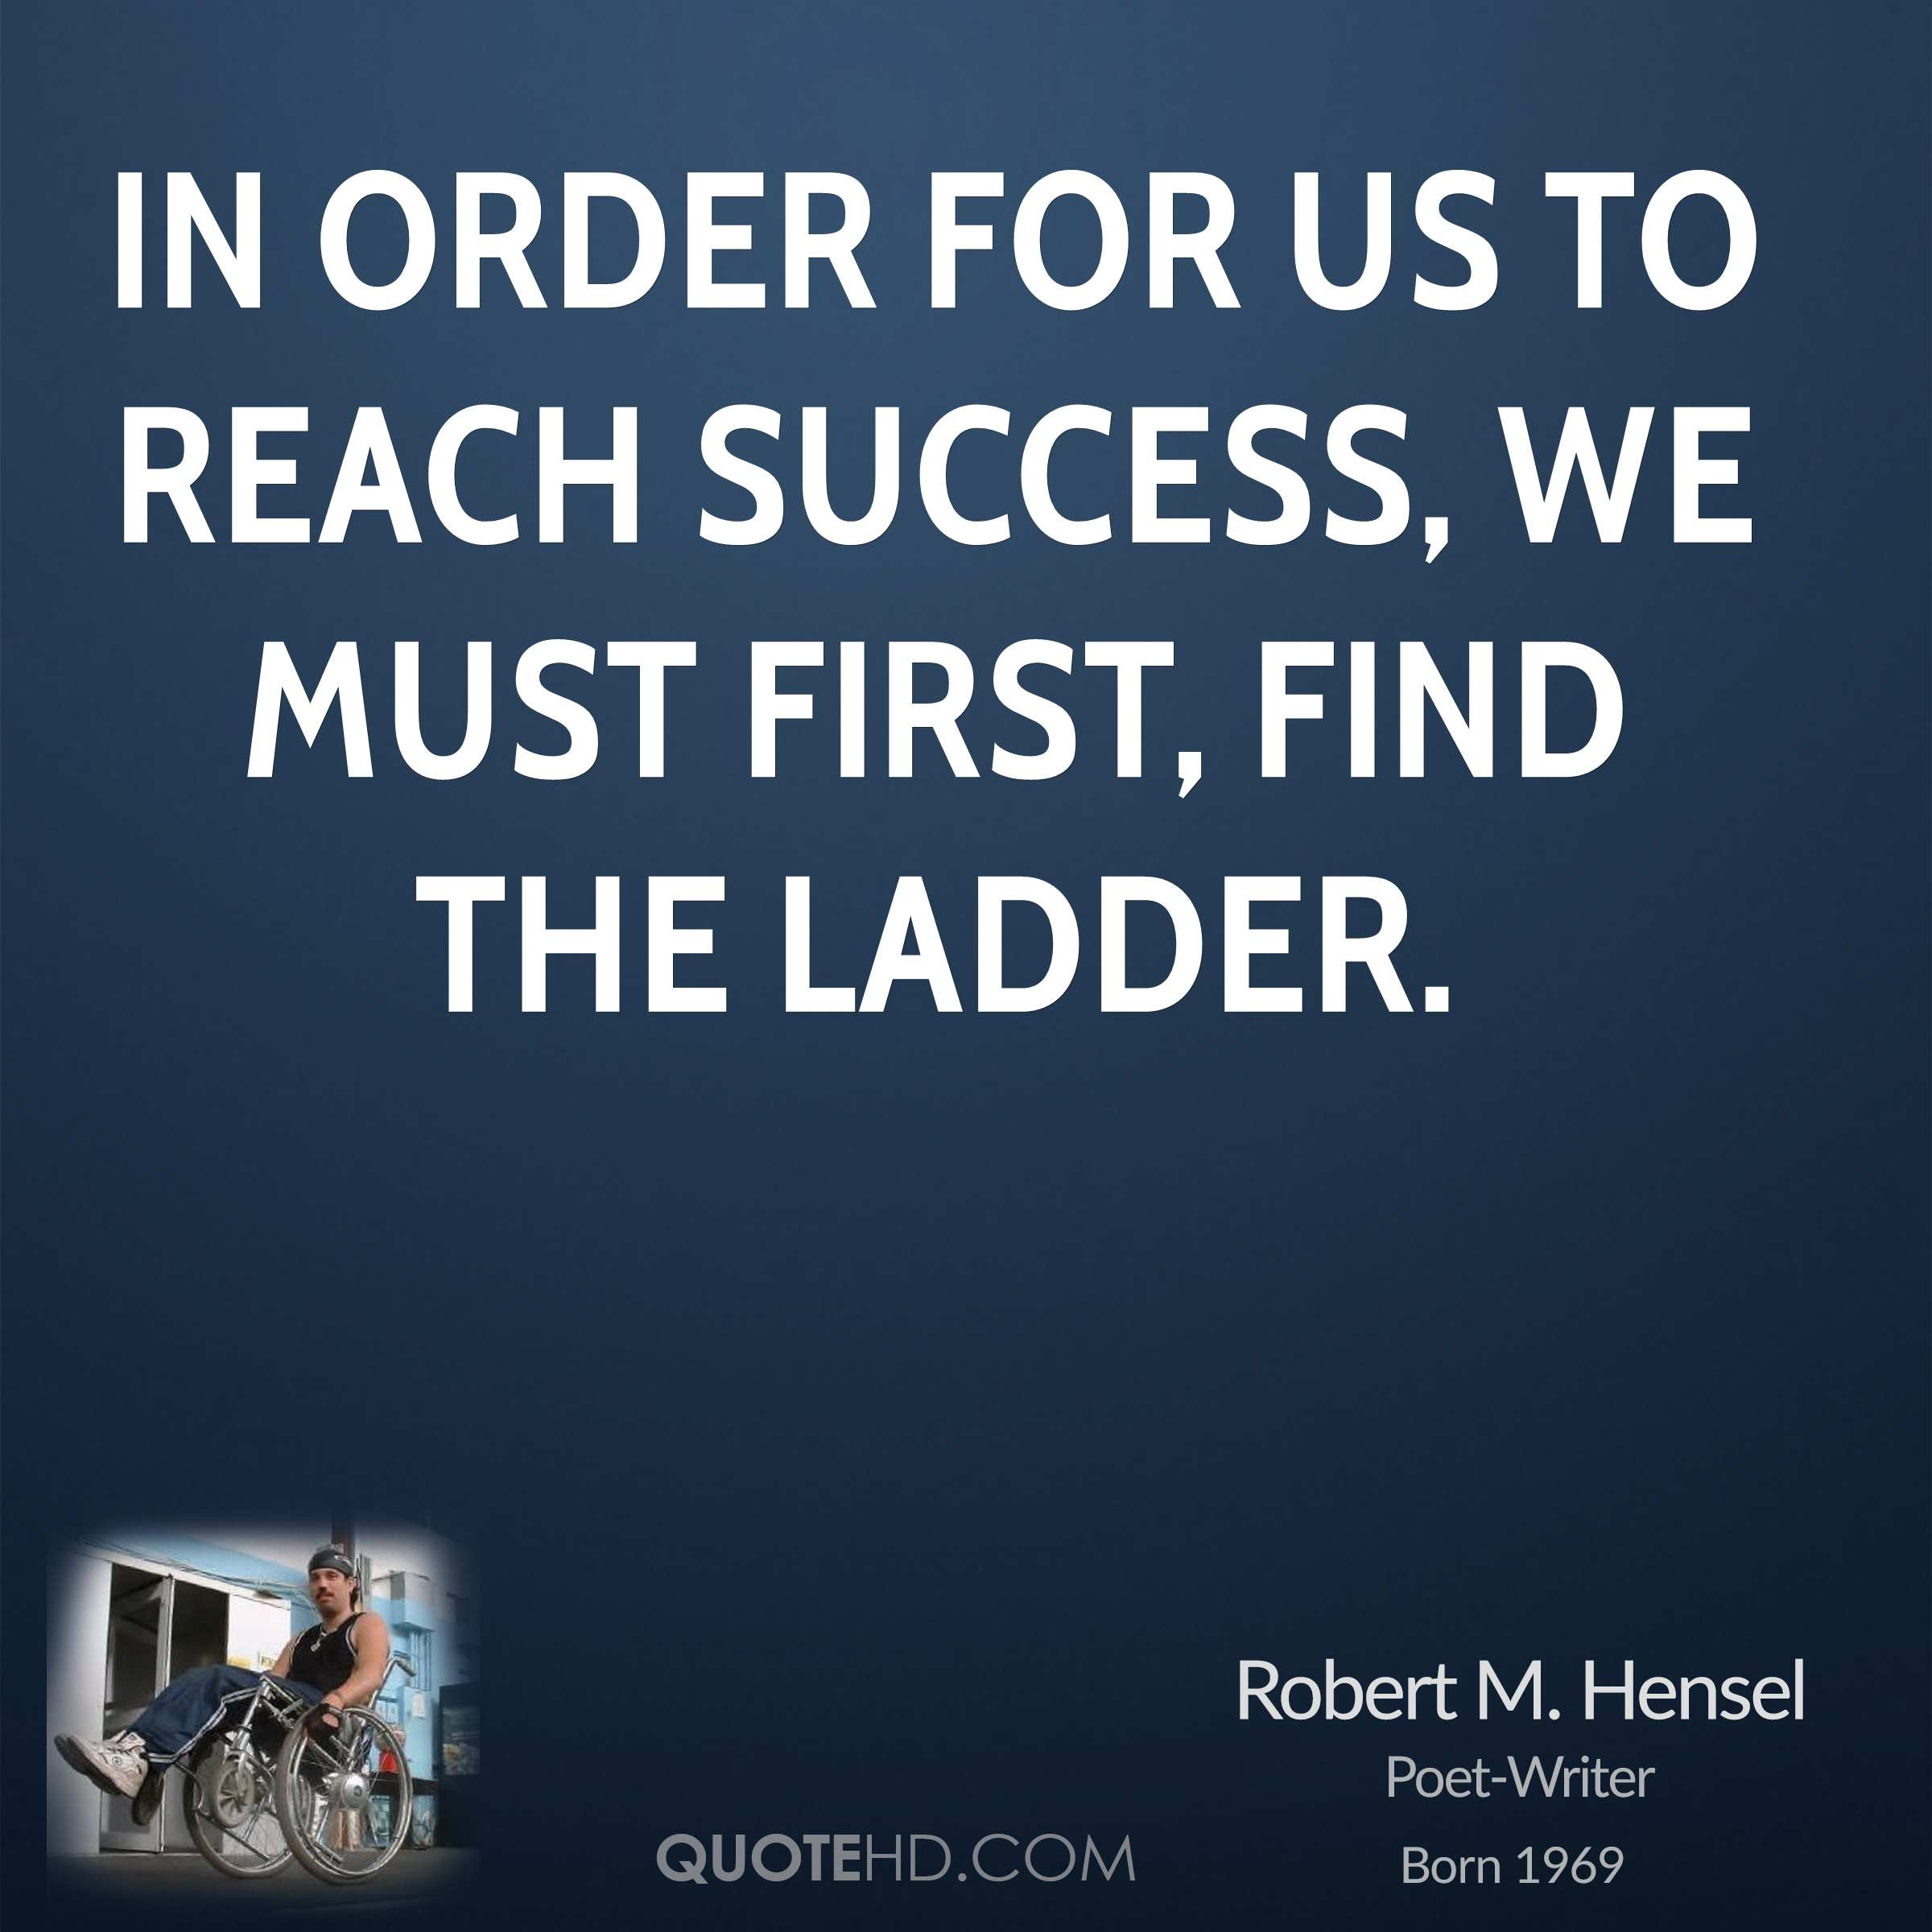 In order for us to reach success, we must first, find the ladder.